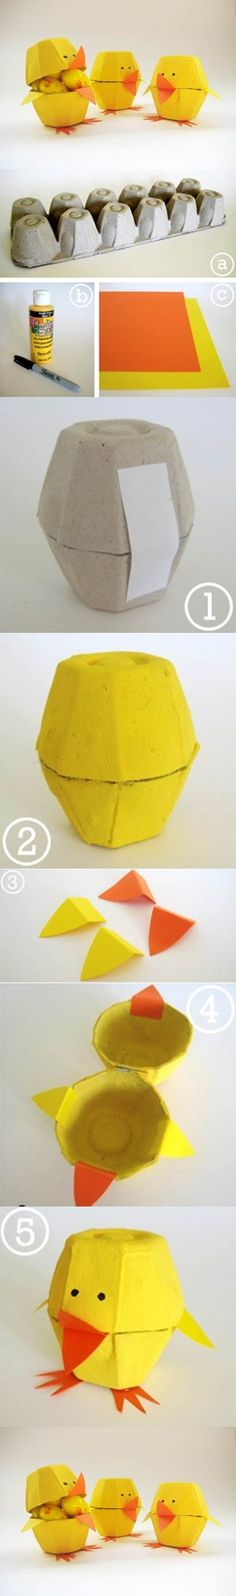 Egg Carton Craft - Lovely Chicks | iCreativeIdeas.com